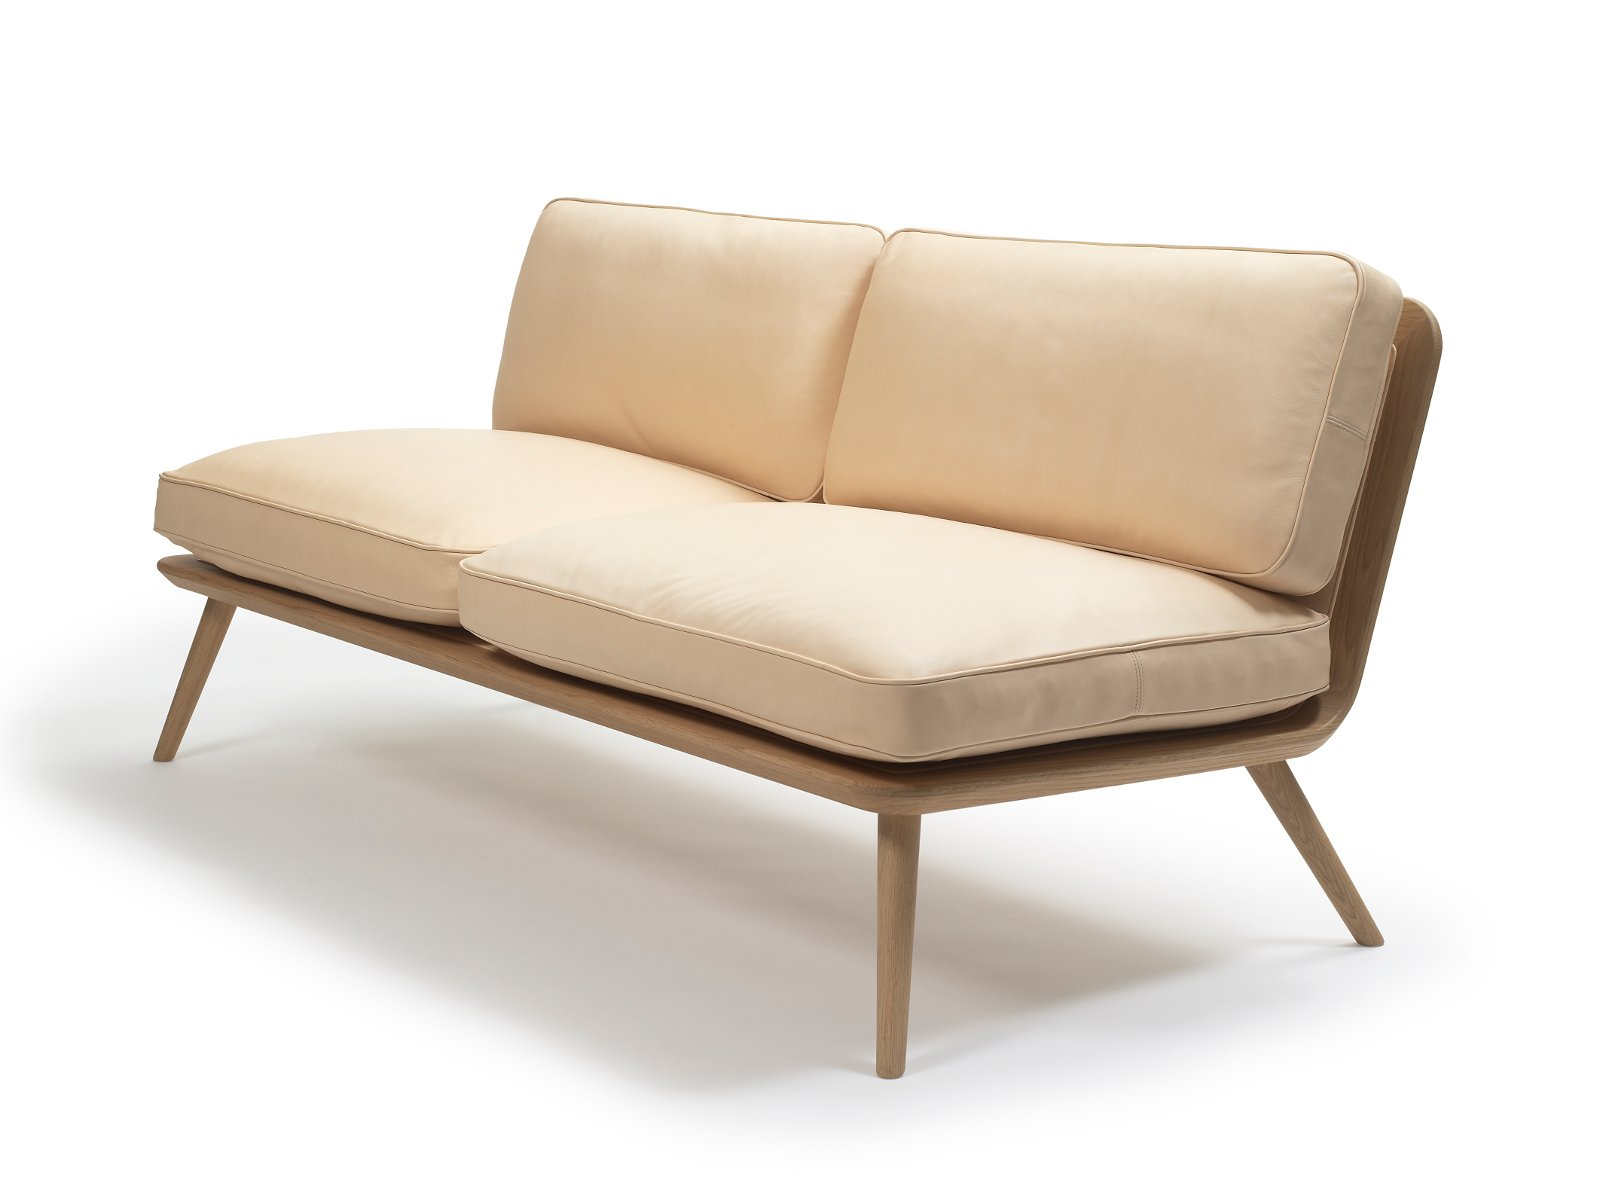 Spine lounge sofa by fredericia furniture design space for Furniture design sofa